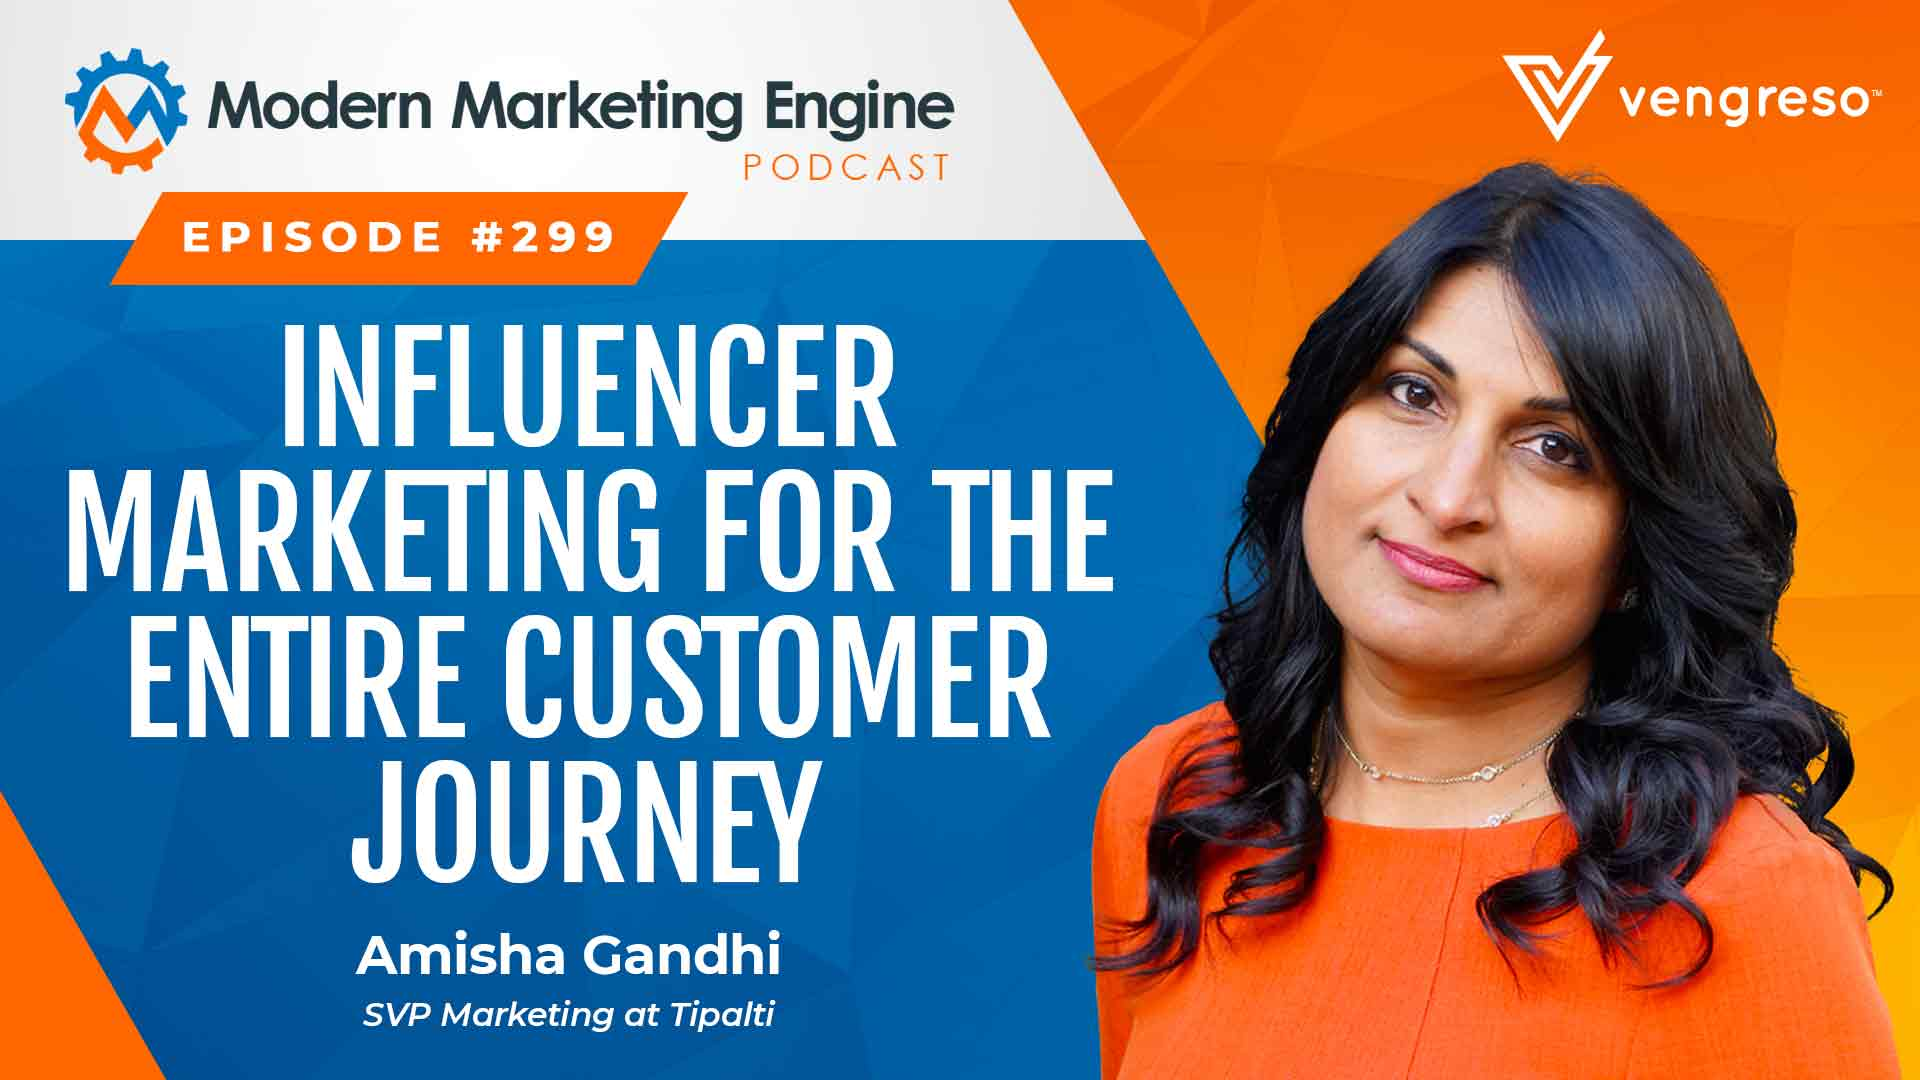 B2B Influencer Marketing for the Entire Customer Journey